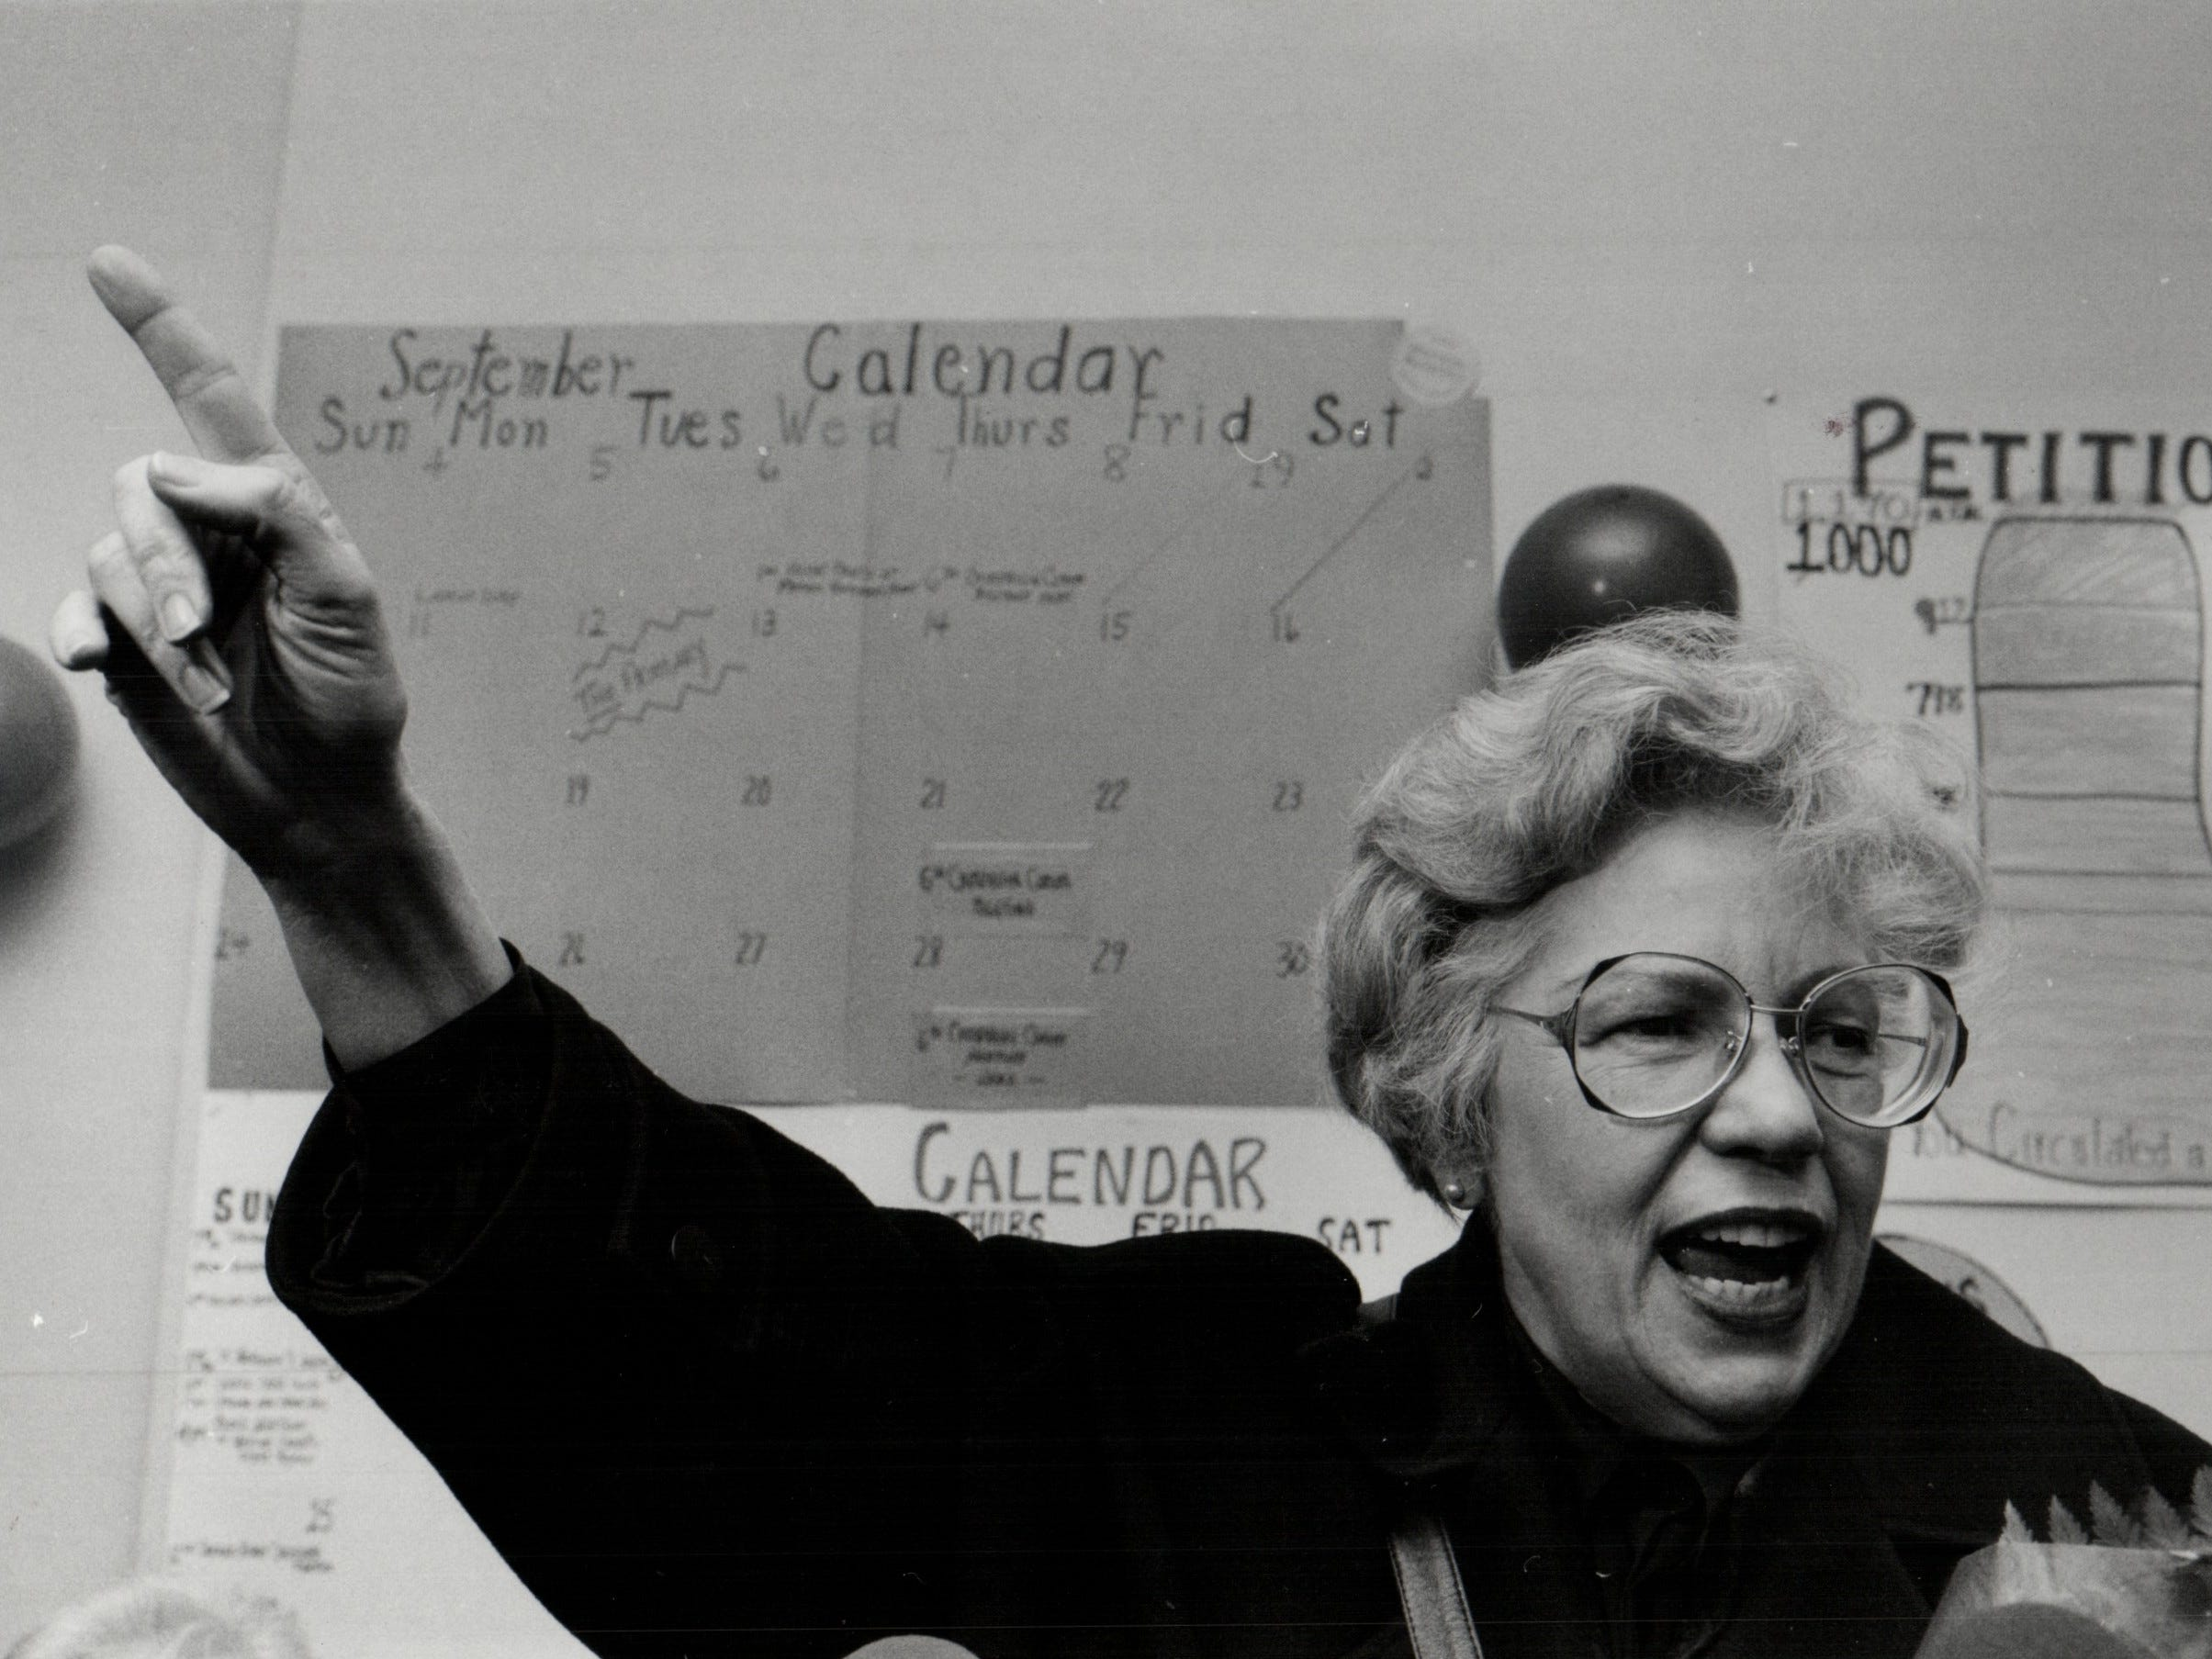 In this 1989 photo from the Detroit Free Press archive, Maryann Mahaffey responds to the cheers of supporters shortly after arriving at her campaign headquarters in Detroit late Tuesday. She won the presidency of the Detroit City Council in the election.